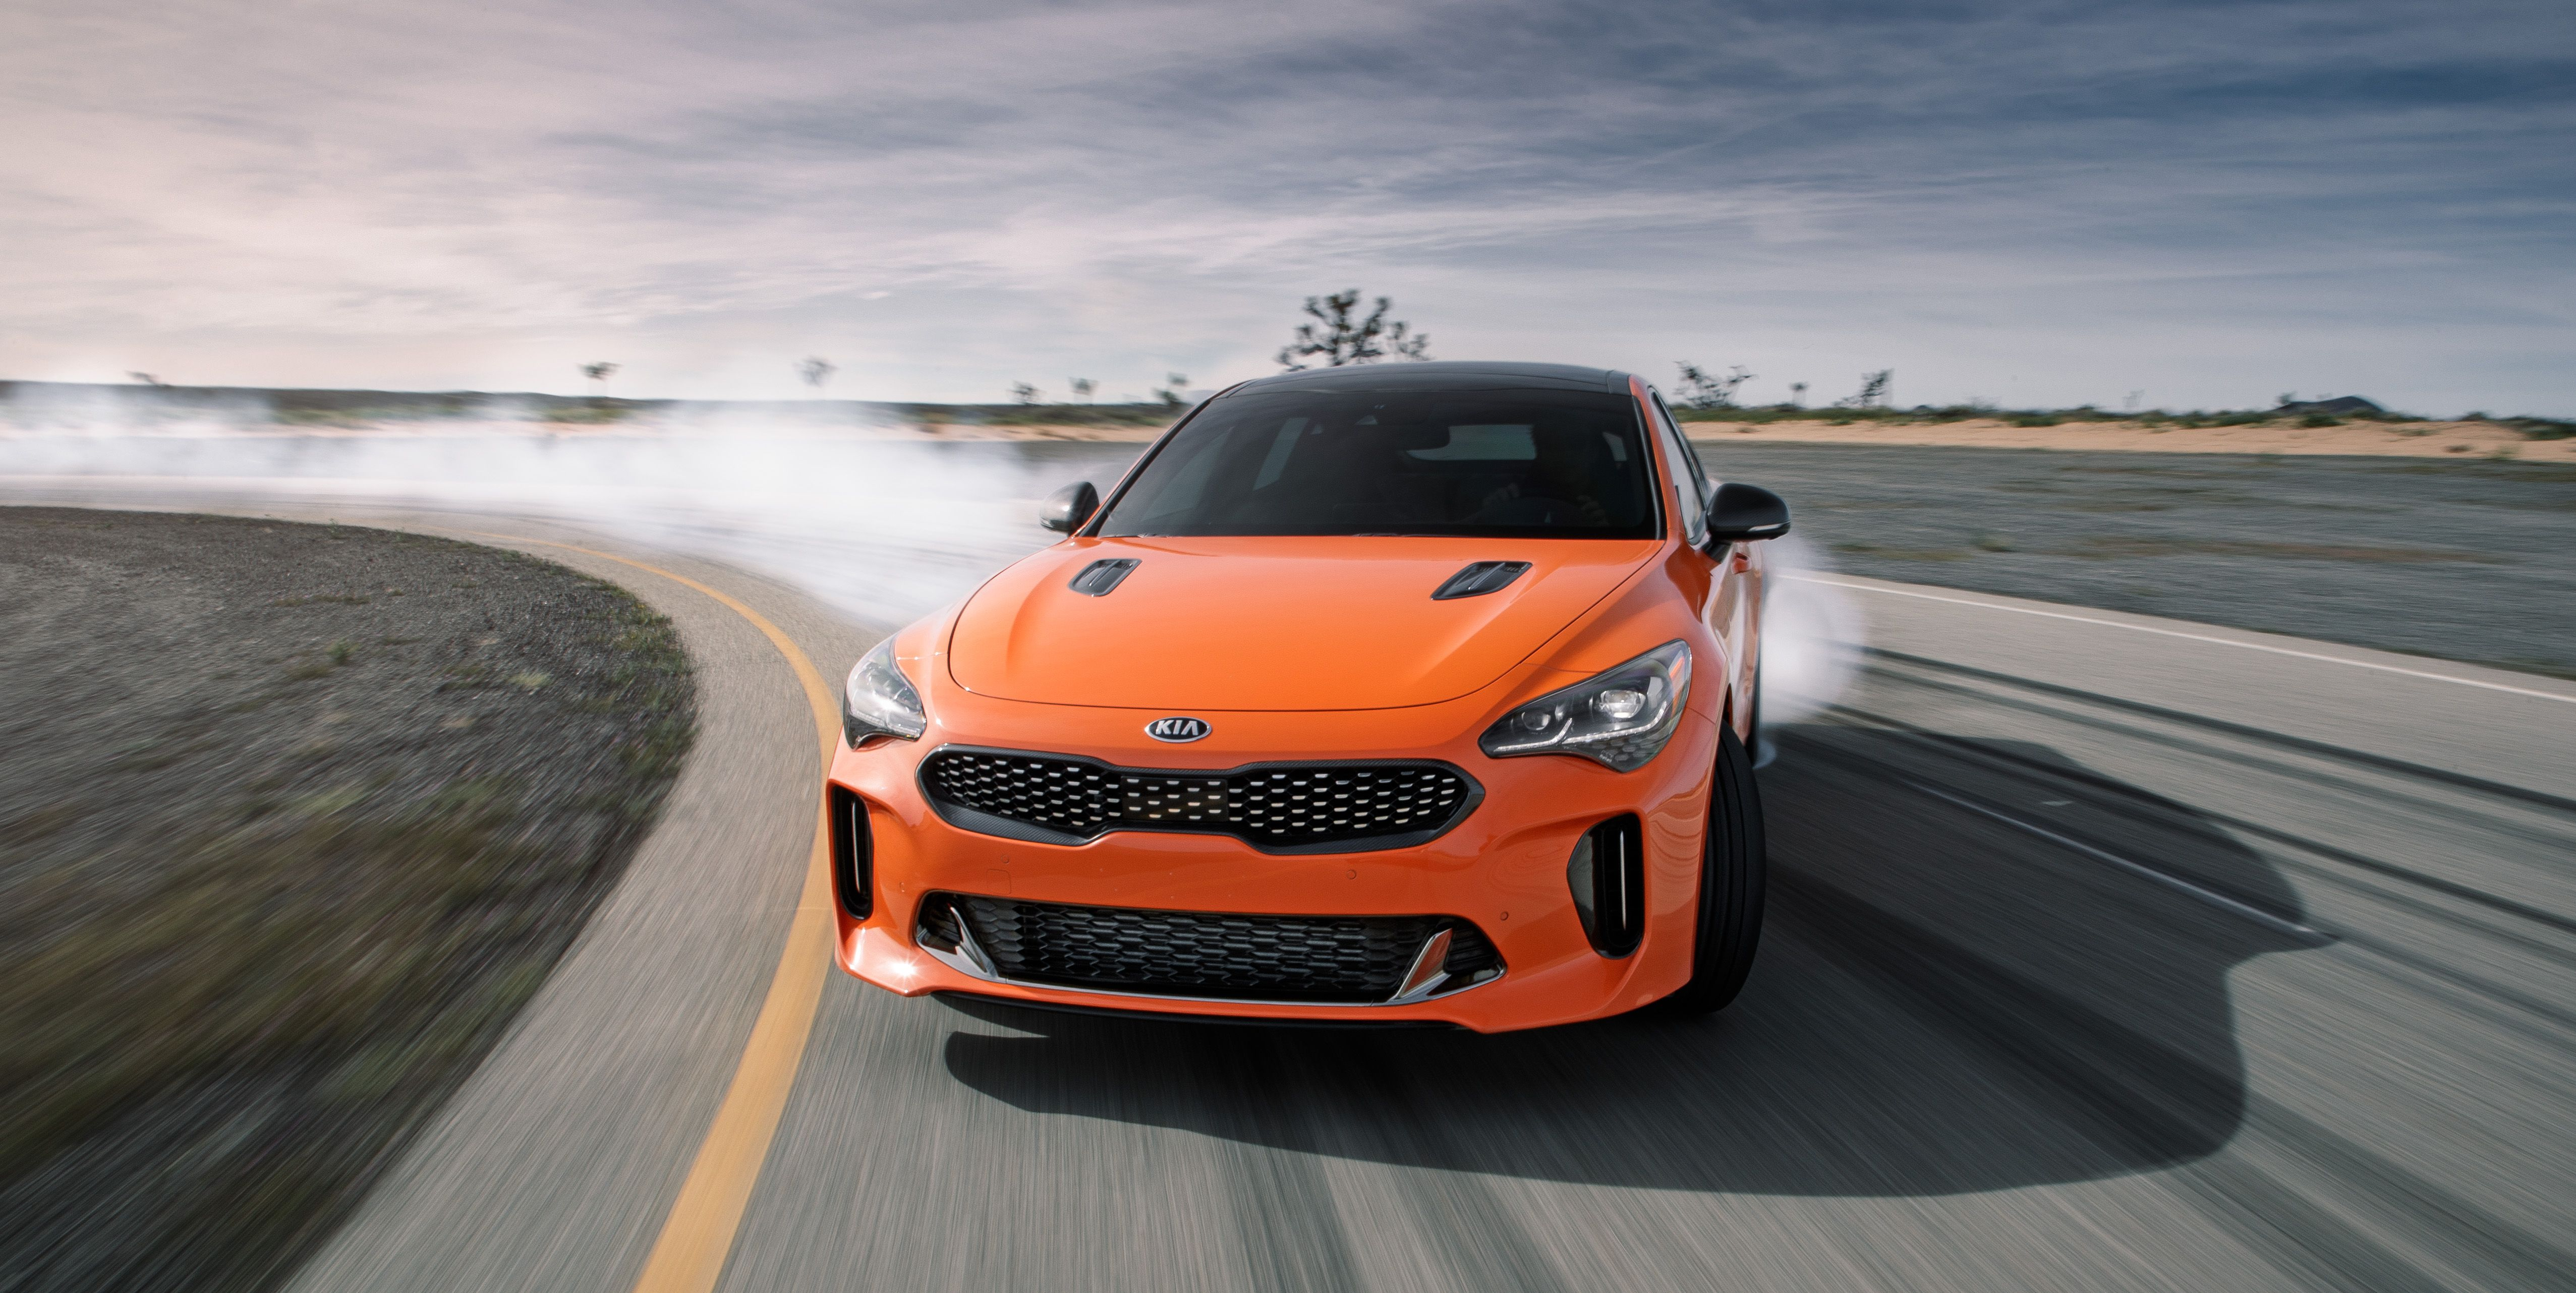 2020 Kia Stinger GTS Is an Orange Special Edition with a Drift Mode up Its Sleeve